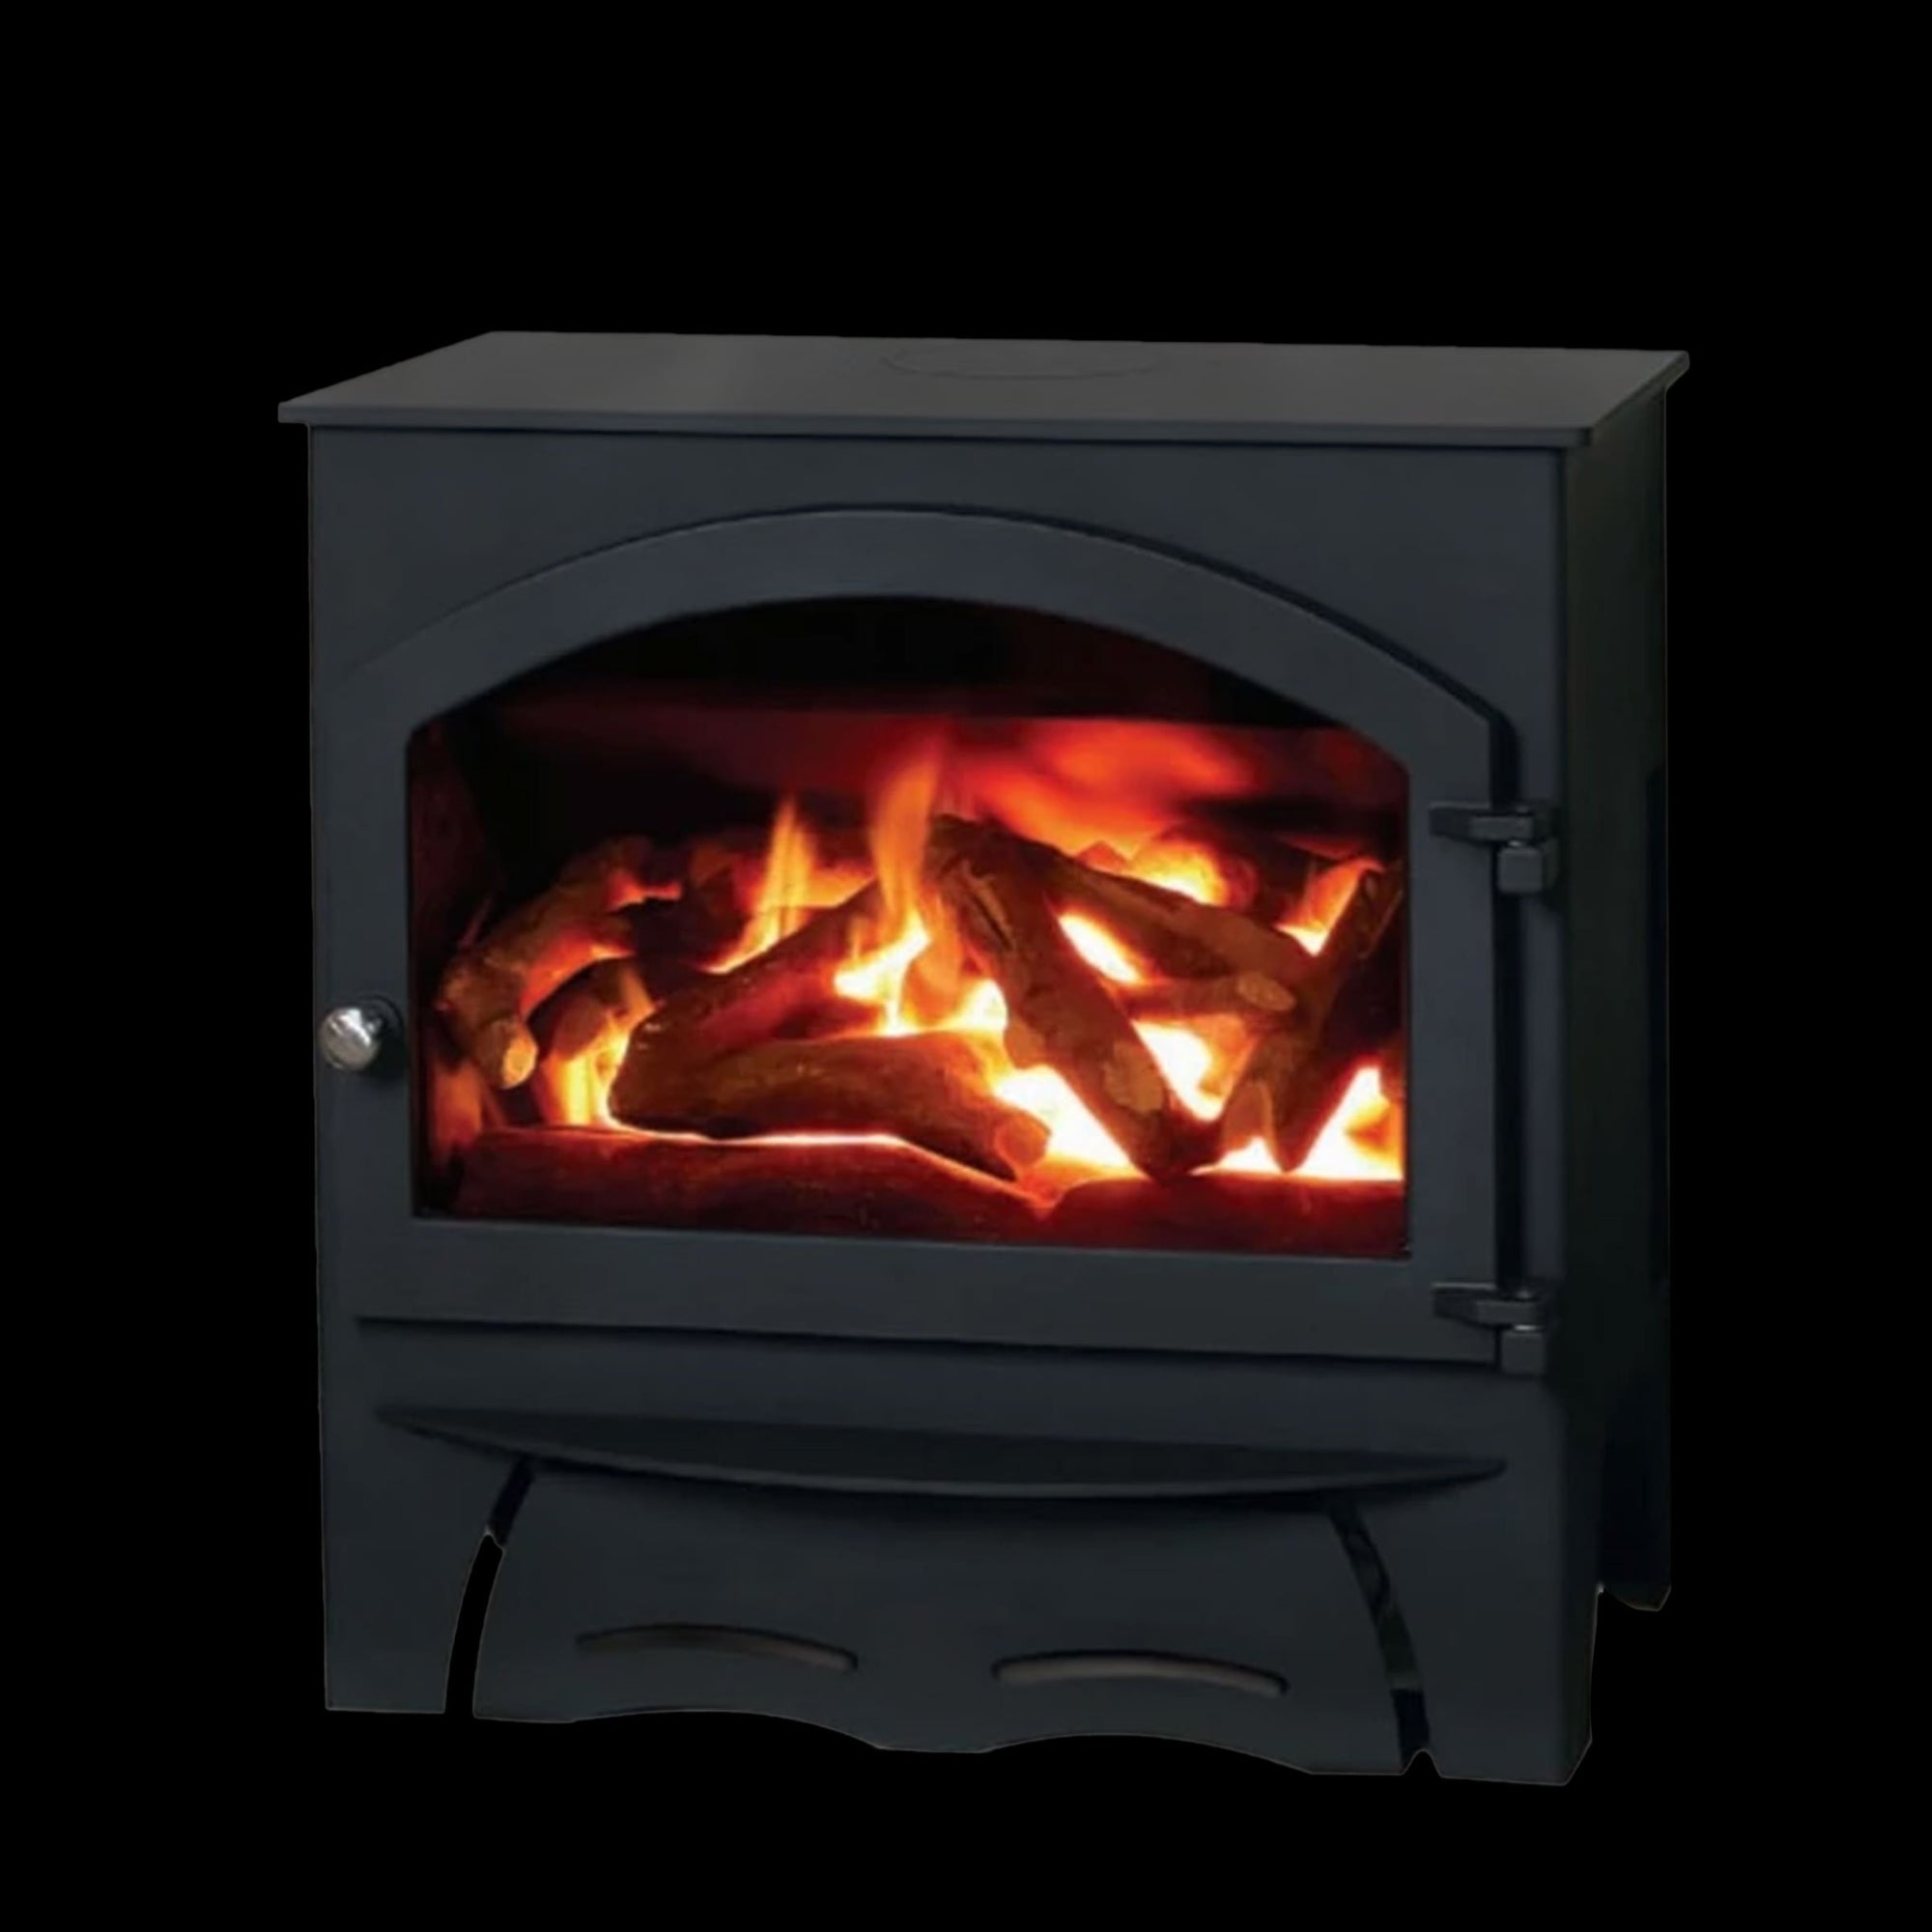 The Whitby Gas Stove | The Architectural Forum